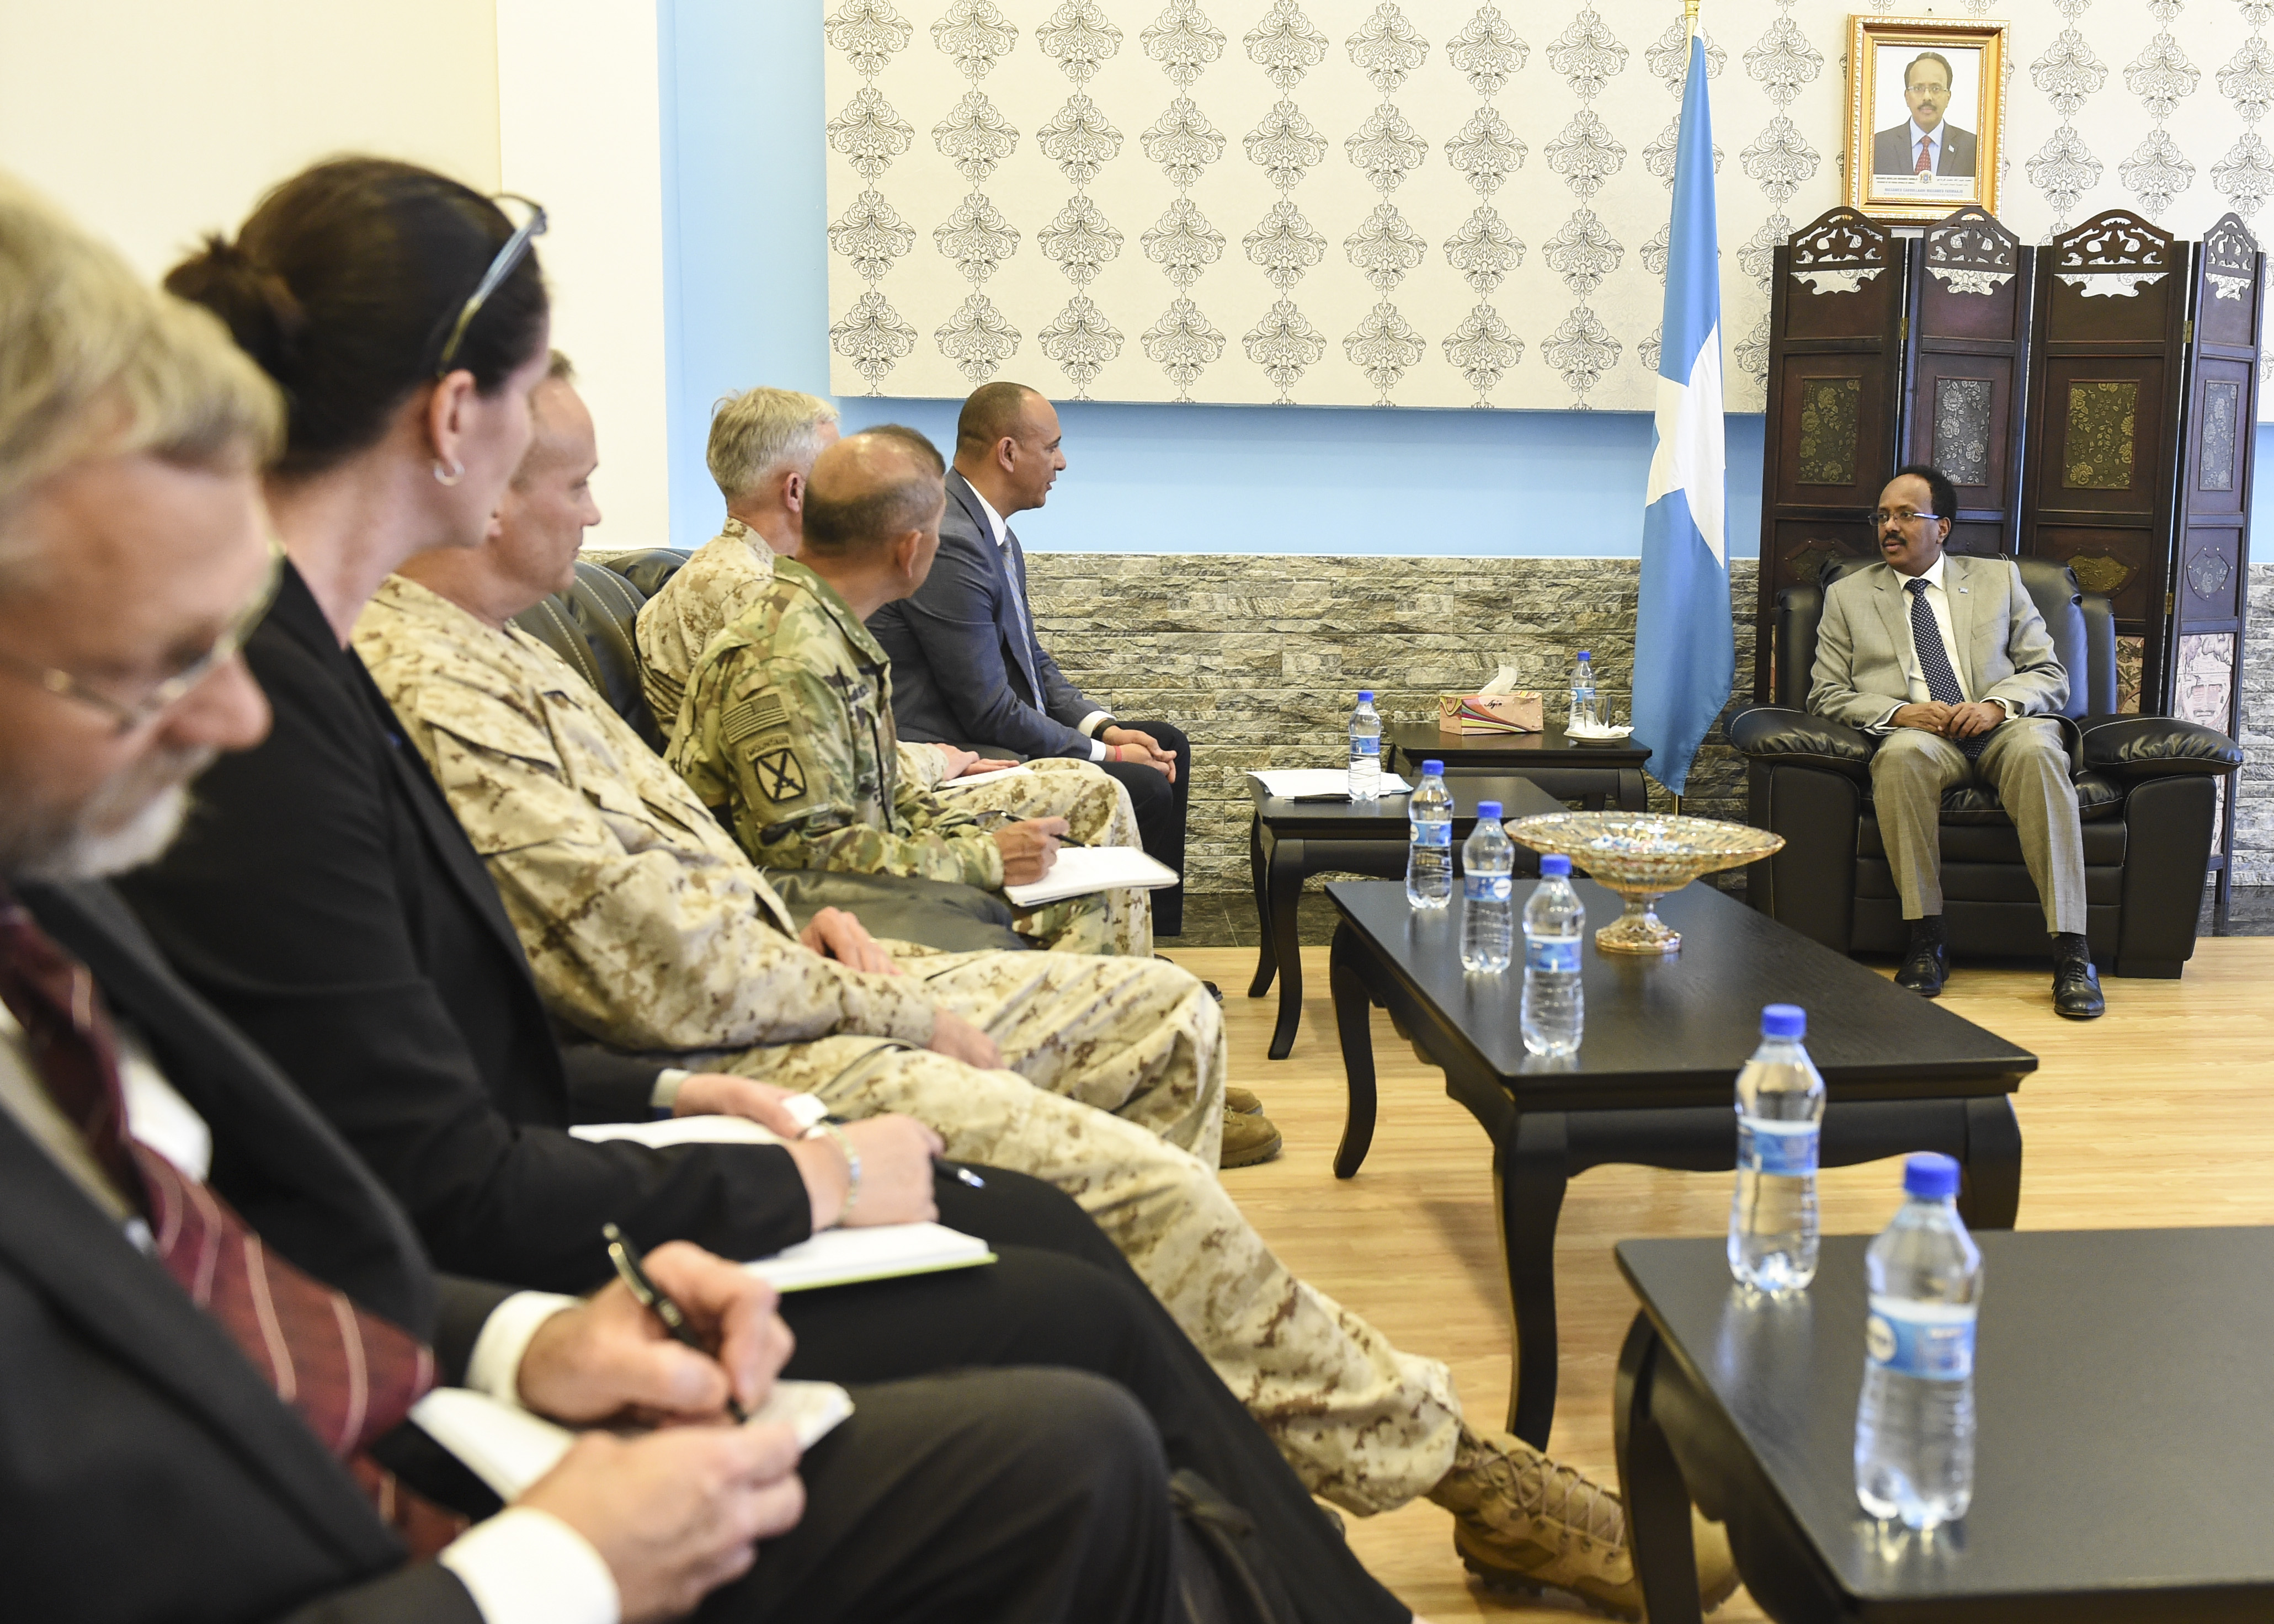 U.S. military and Department of State officials meet with Somalia President Mohamed Abdullahi Mohamed in Mogadishu, Somalia, Oct. 12, 2017. Topics of interest covered during the meeting included U.S. and Somali national interests in the region and opportunities to strengthen the Somali National Security Forces, particularly as the African Union mission in Somalia troops transition out of the security role in coming years. Attendees of the meeting included Martin Dale, the Chargé d'Affaires of the U.S. Mission to Somalia, U.S. Marine Corps Gen. Thomas Waldhauser, U.S. Africa Command commander, U.S. Marine Corps Brig. Gen. David Furness, Combined Joint Task Force – Horn of Africa commanding general, and U.S. Army Brig. Gen. Miguel Castellanos, deputy commanding general of CJTF-HOA in Somalia (U.S. Air Force photo by Staff Sgt. Eboni Prince)